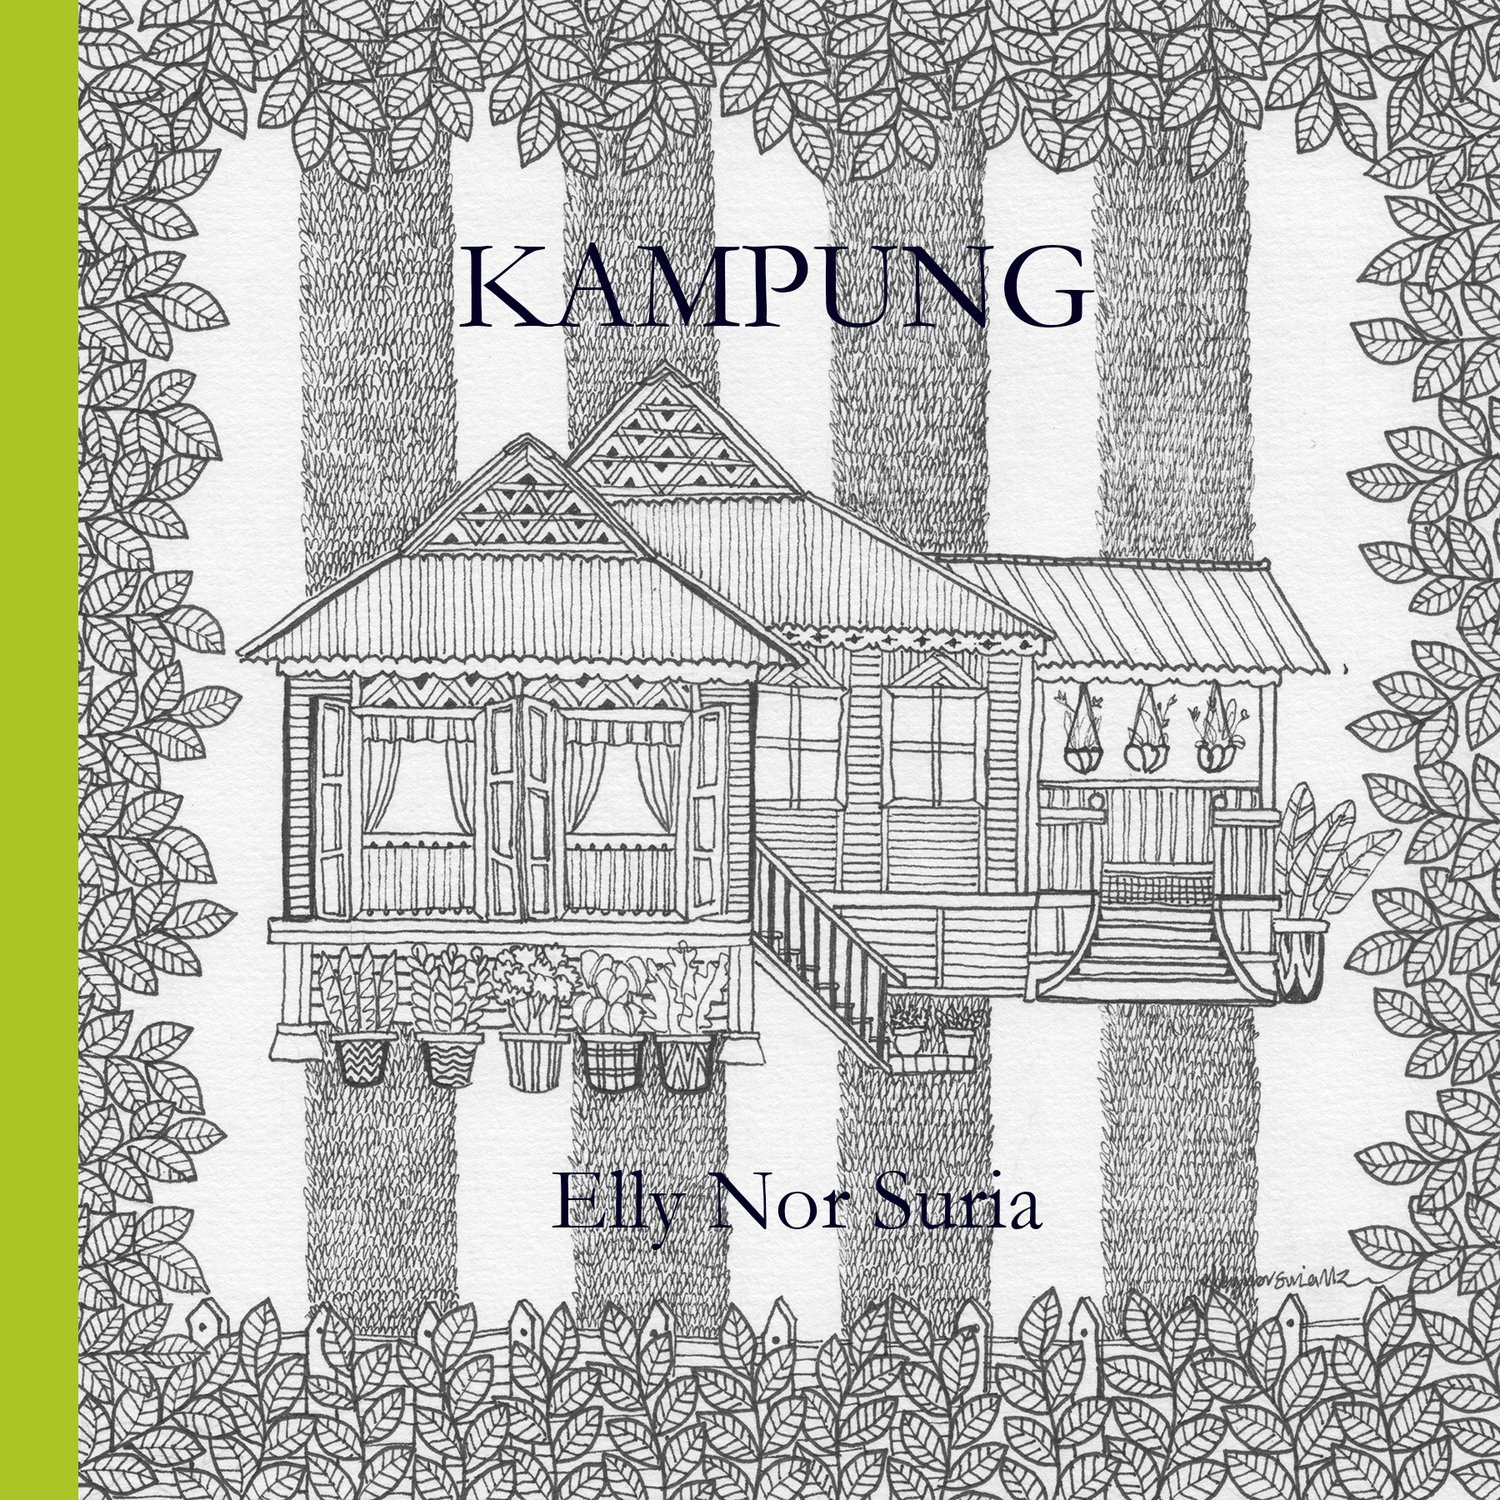 Kampung - Colouring Book